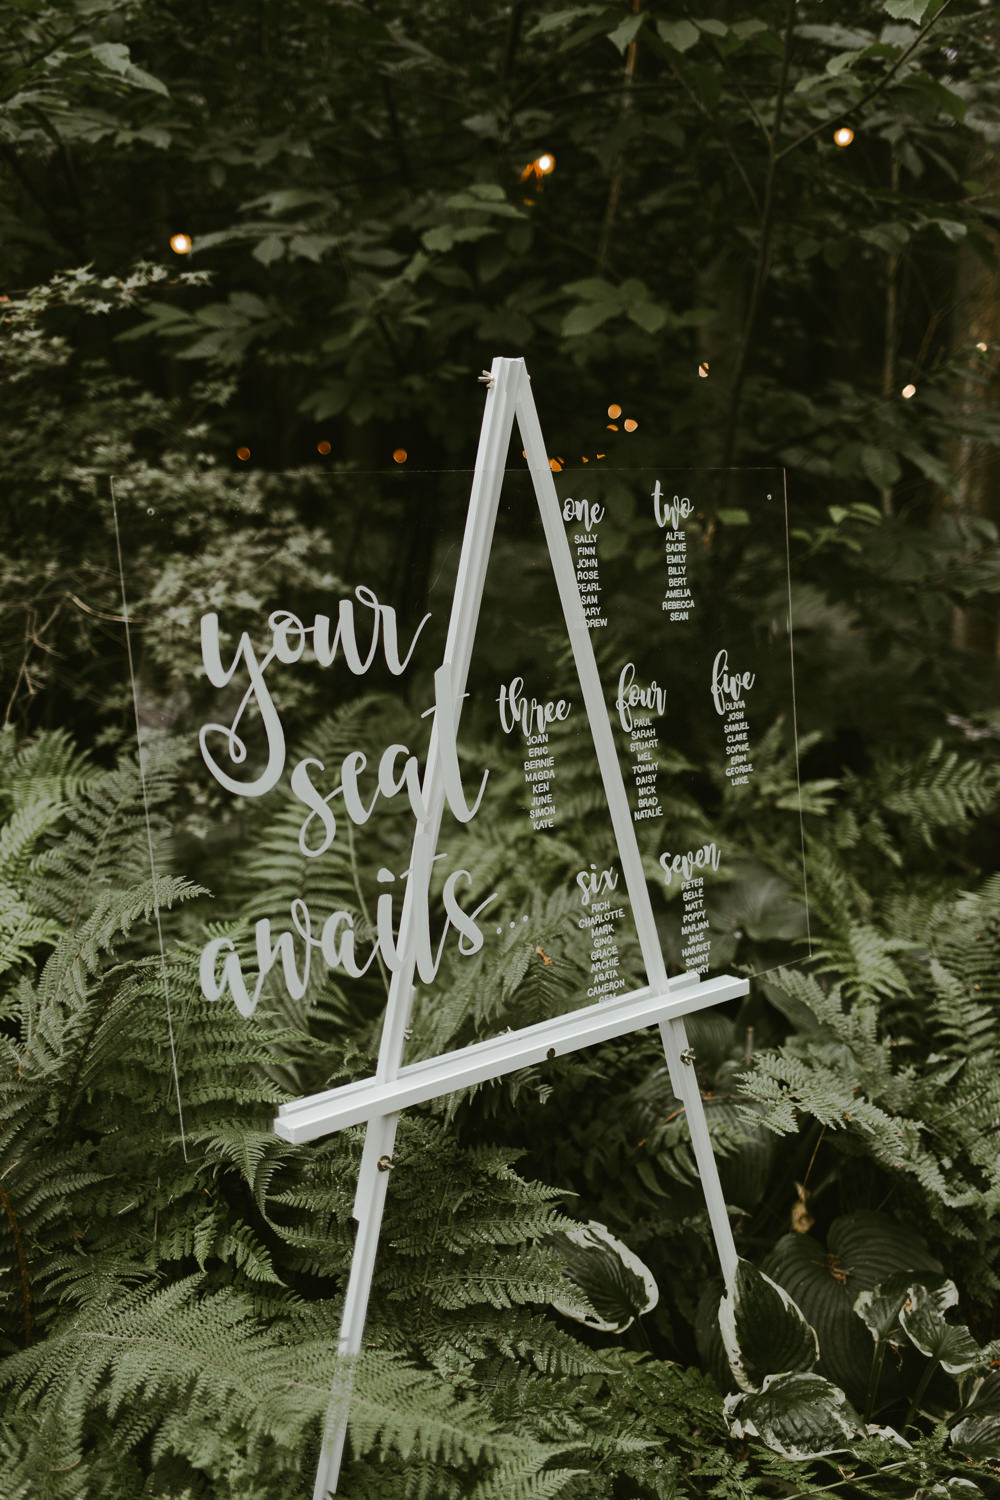 Perspex Clear Glass Acrylic Table Plan Seating Chart Dreamy Woodland Wedding Ideas Jasmine Andrews Photography